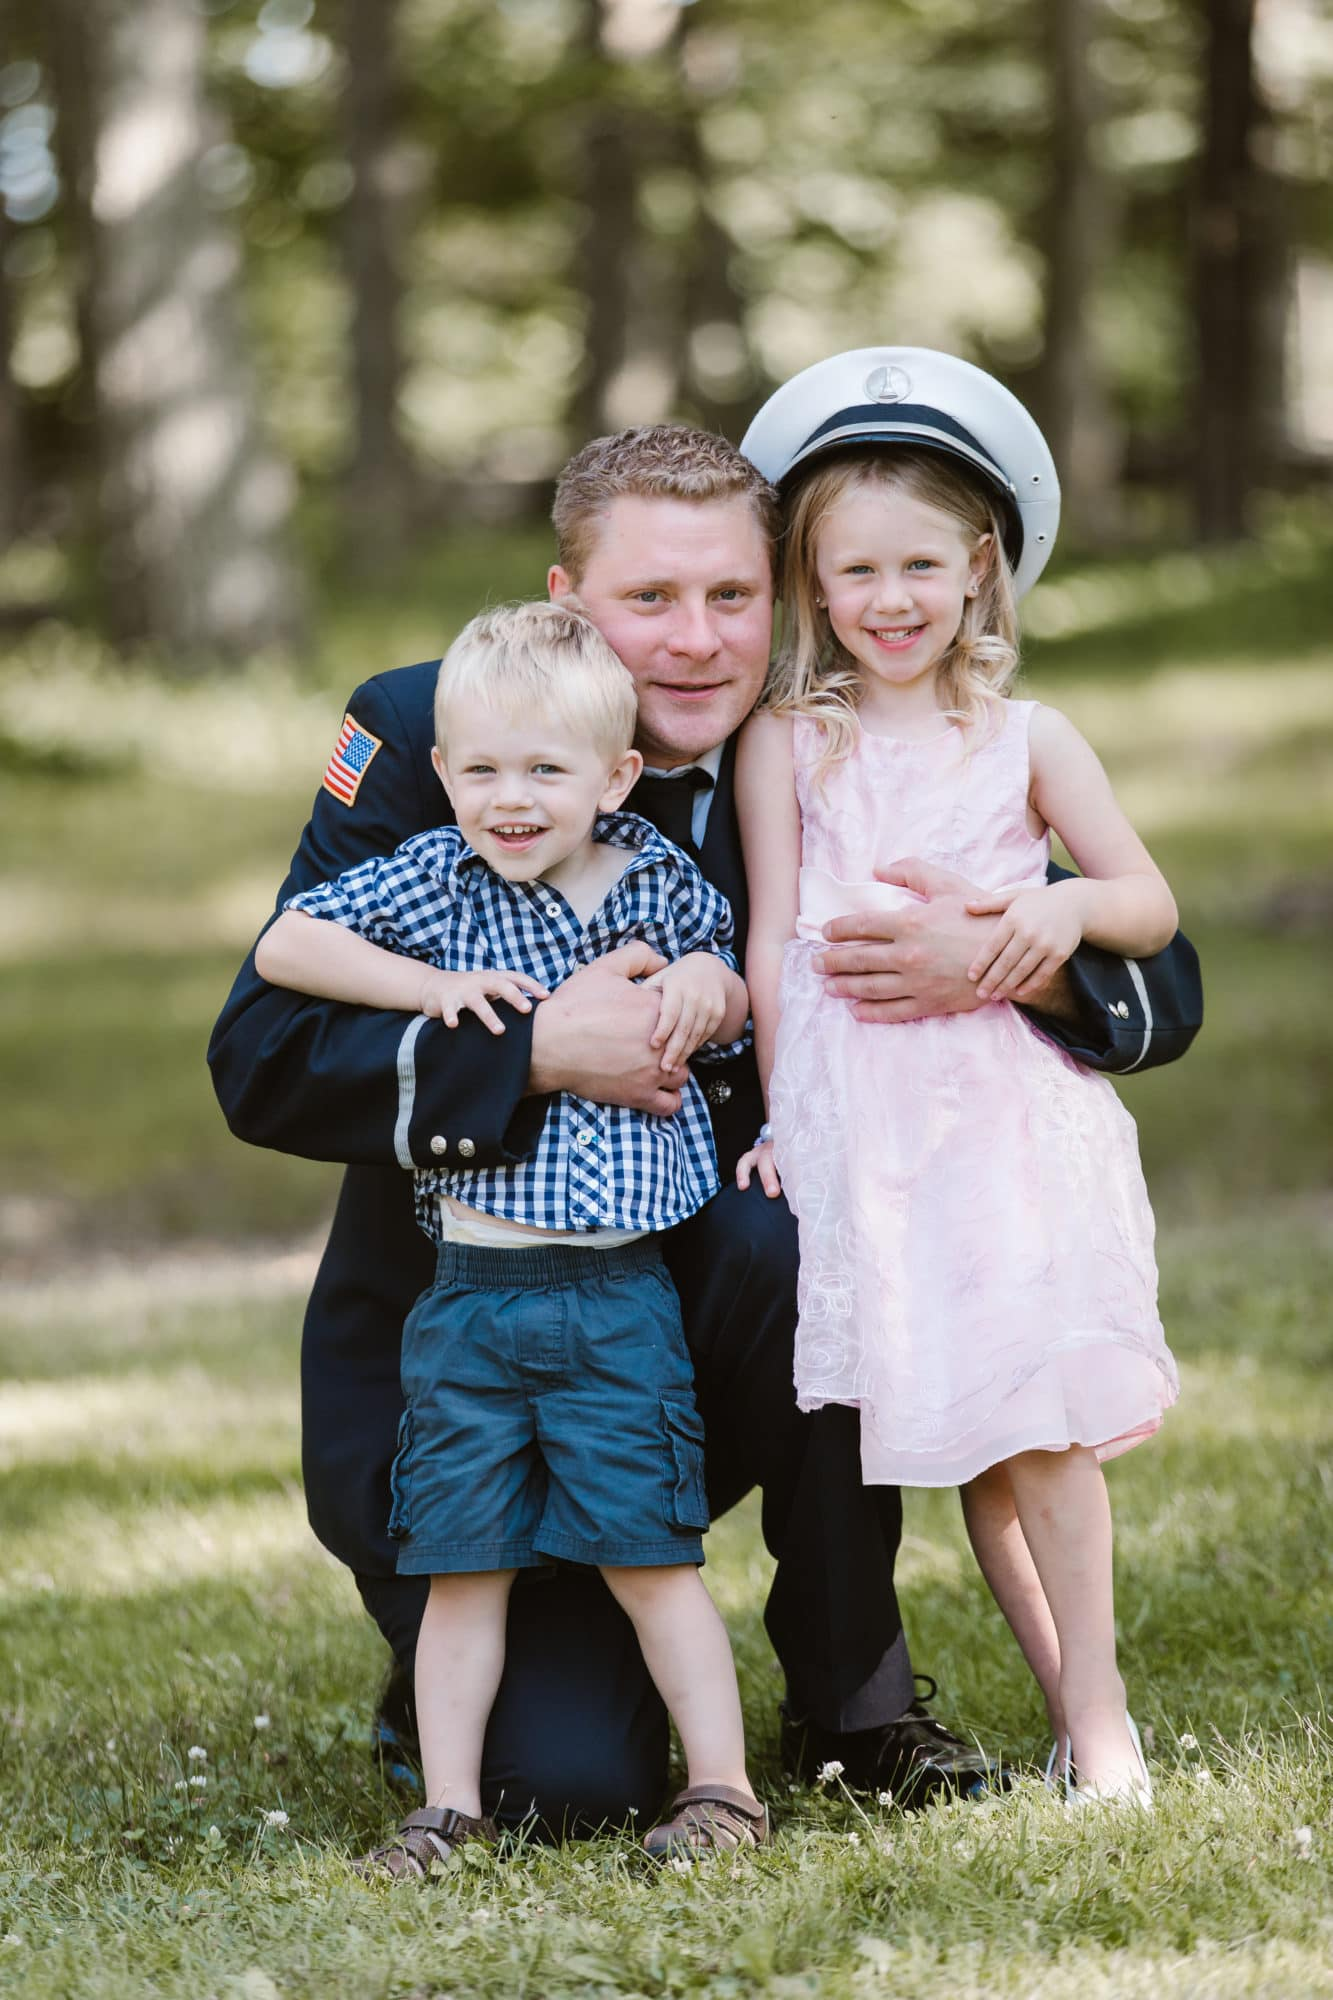 A family portrait session in the park to thank those who serve our country on a daily basis photographed by Massart Photography RI